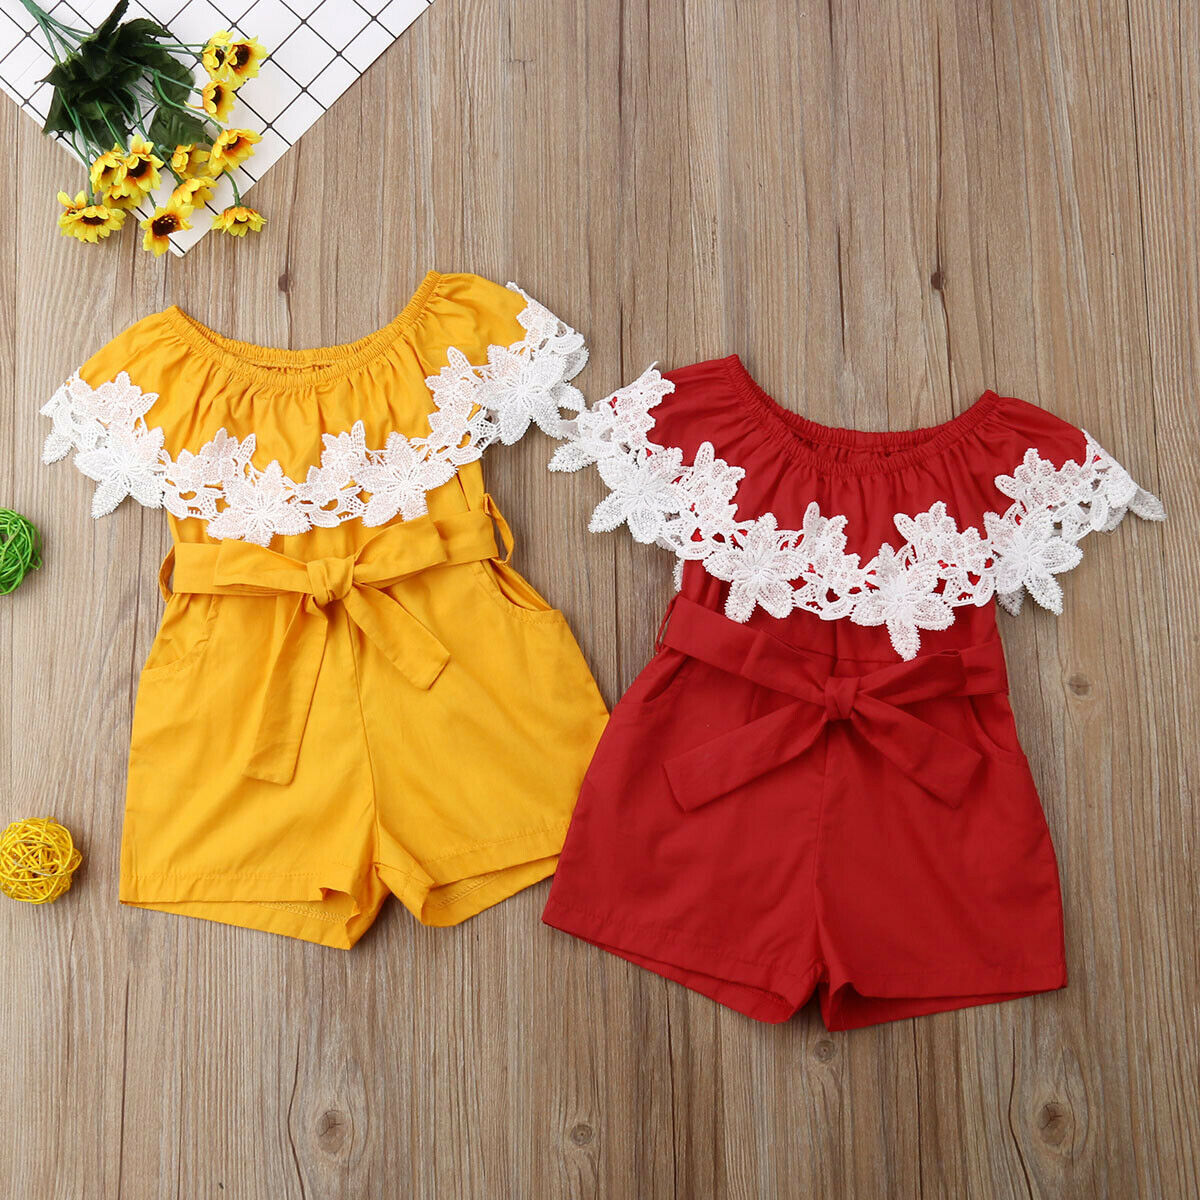 Jumpsuit Rompers Lace Flower Newborn Baby-Girl One-Piece Outfit Solid